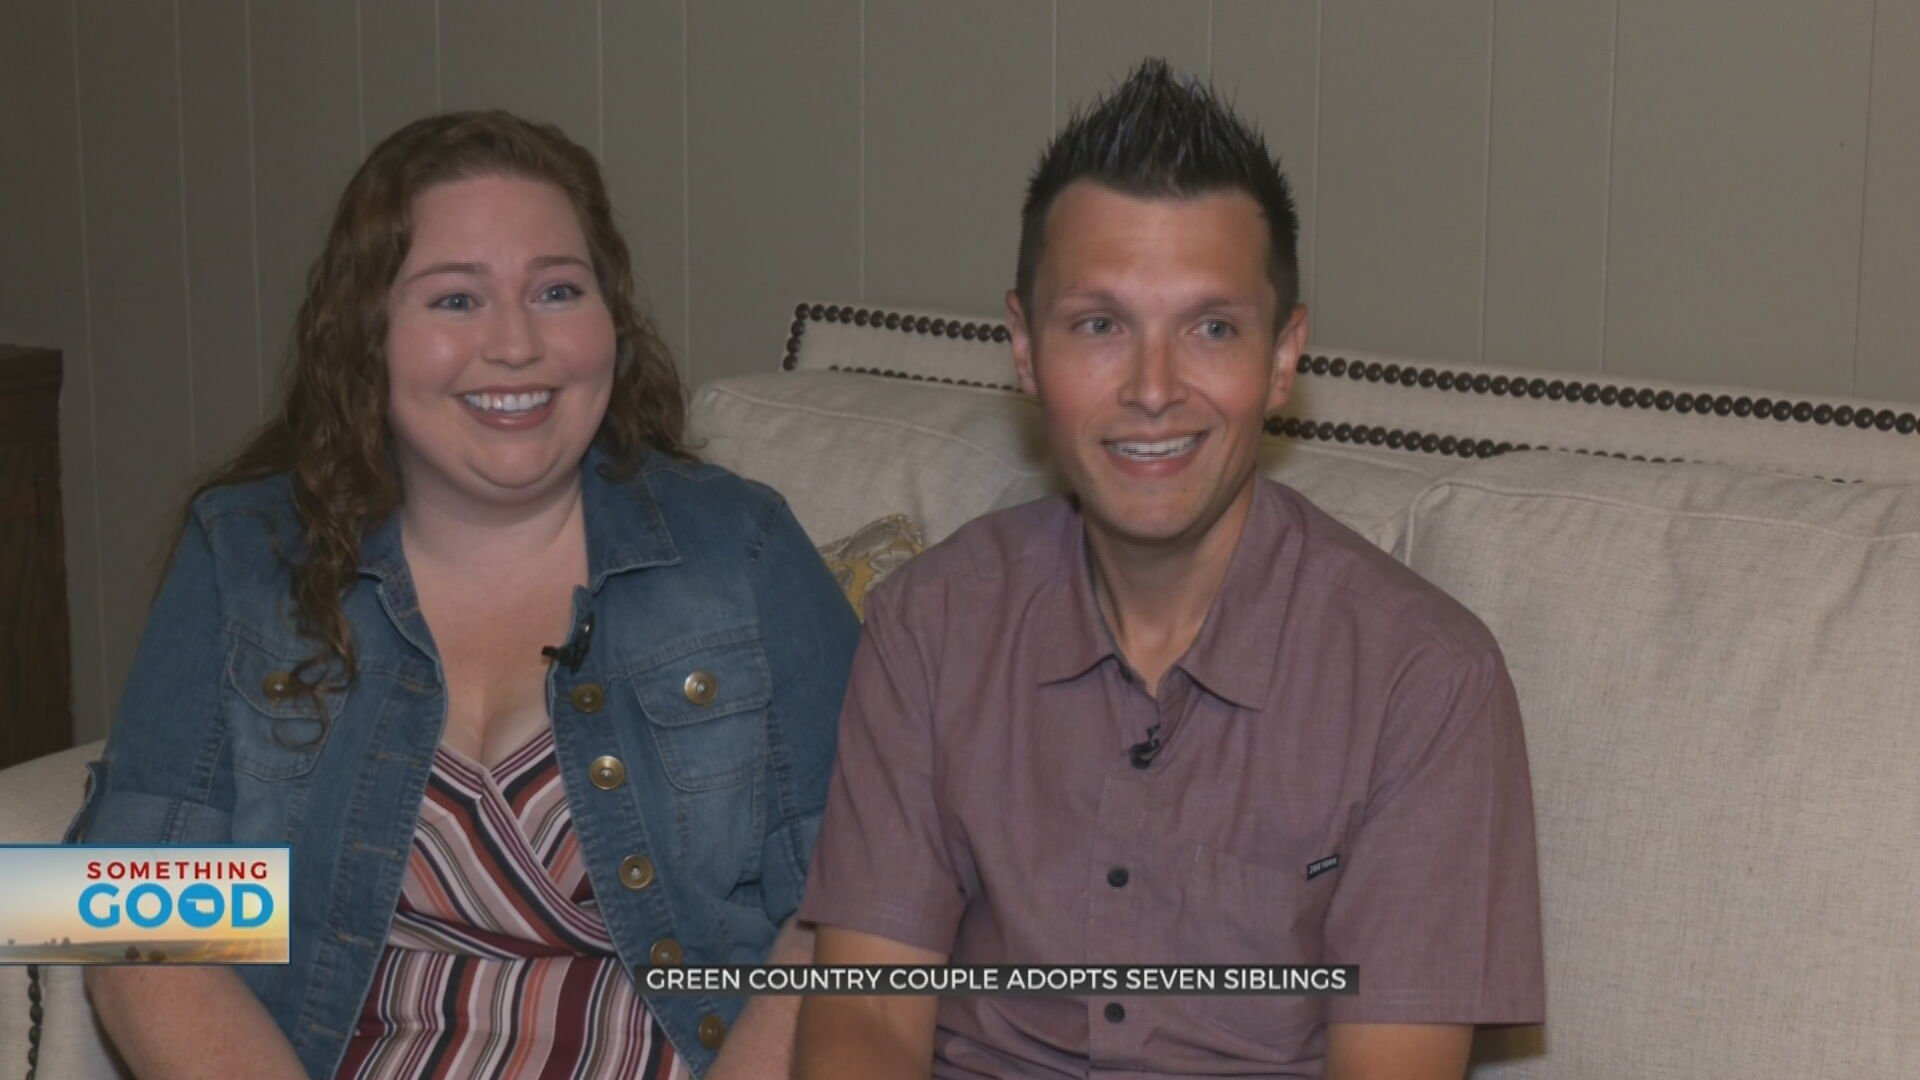 7 Siblings Adopted By Local Couple Who Says 'It Was Meant To Be'